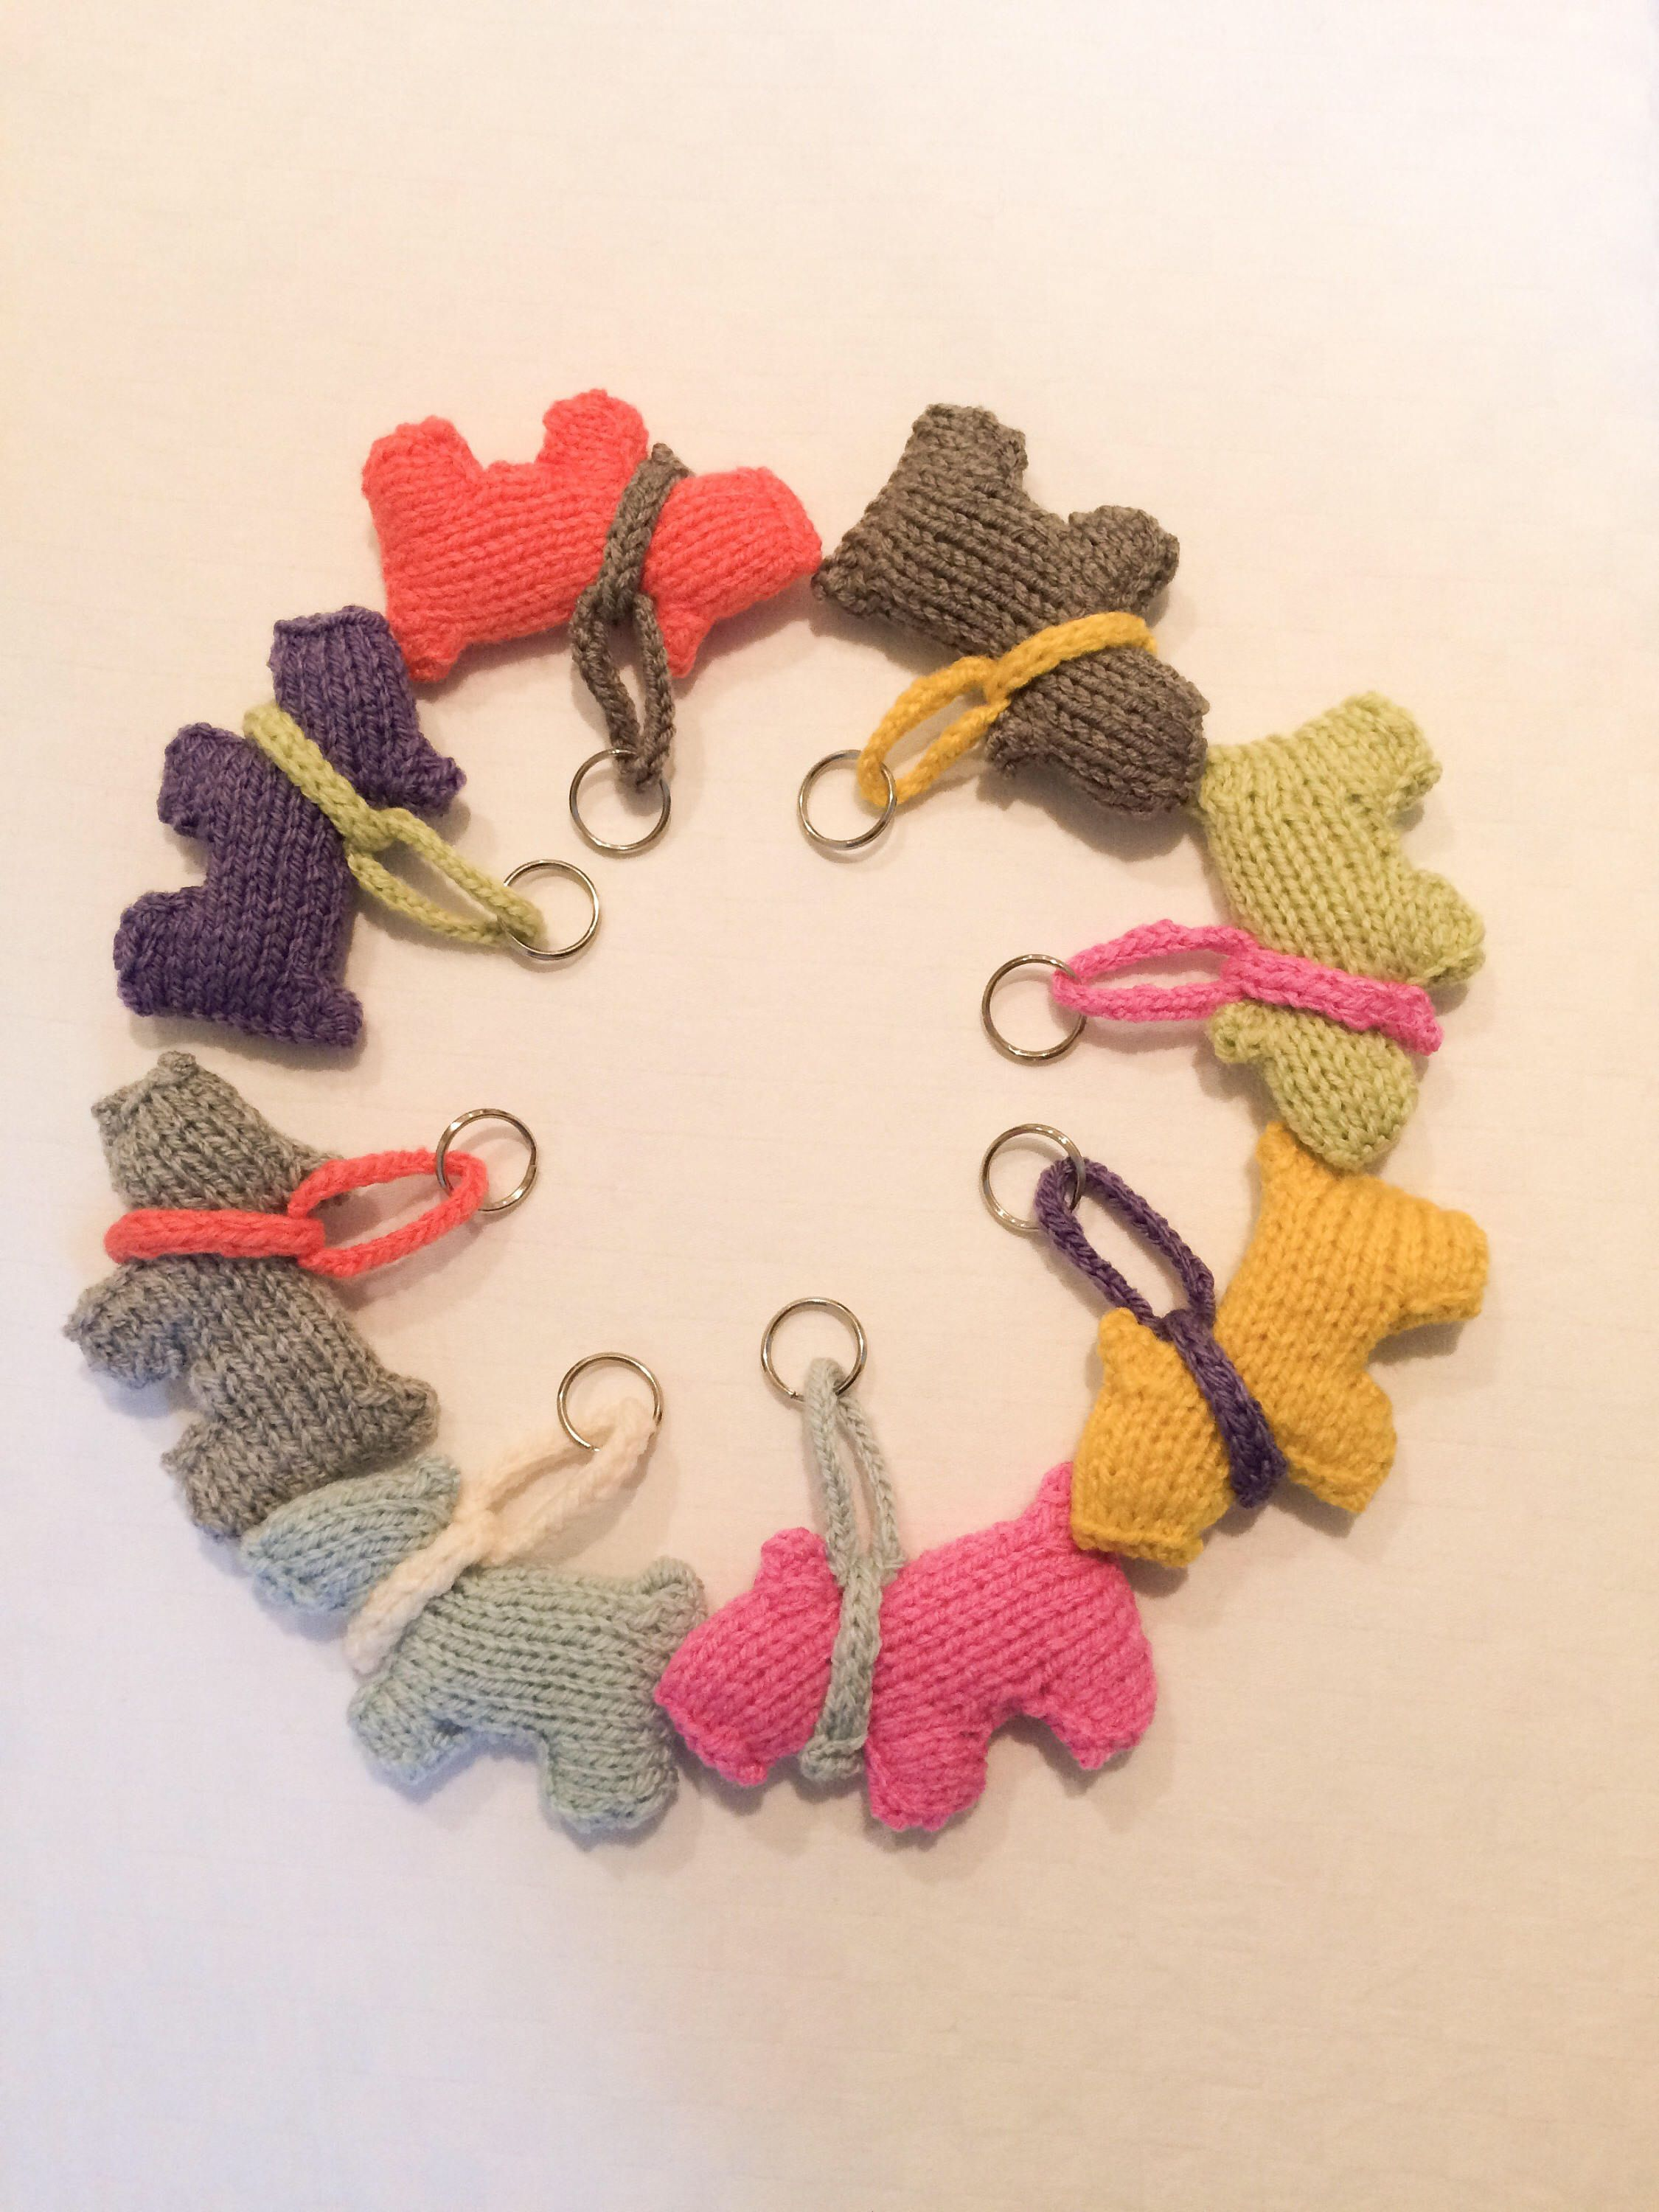 decor small chain figurine socking knitted fillers pin animal rings kids dog handmade gift ring key scottish